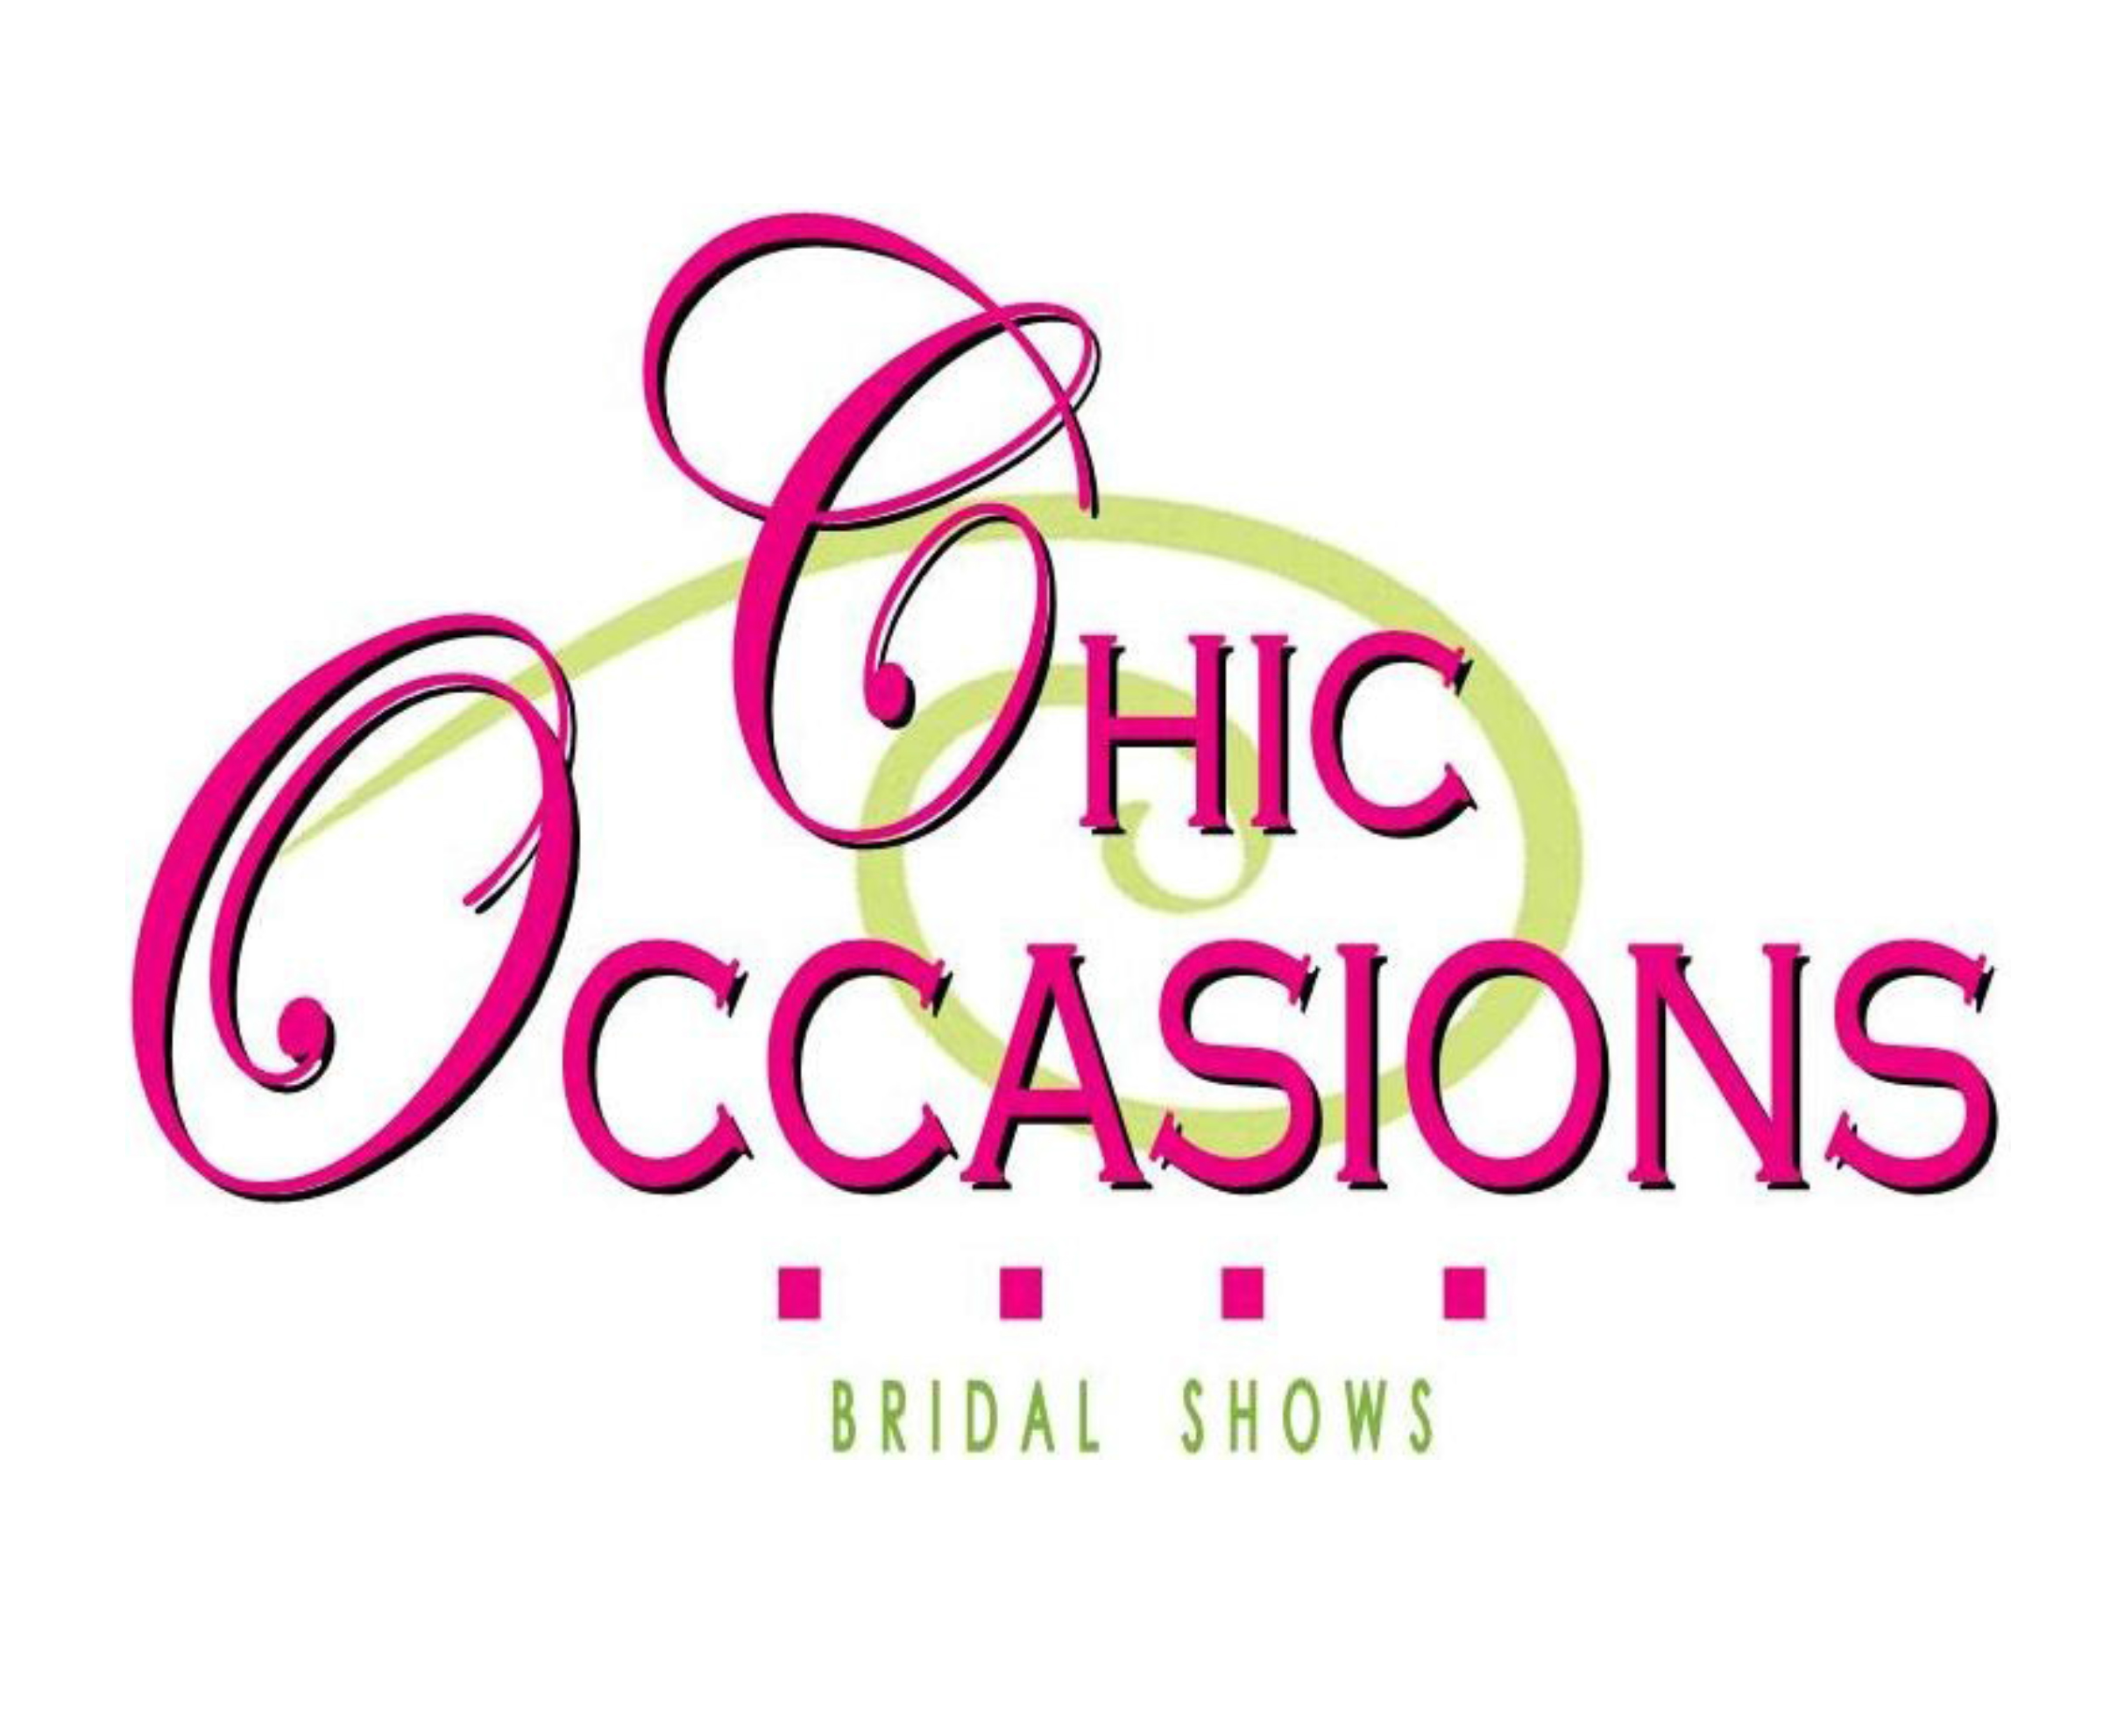 Chic Occasions Bridal Show